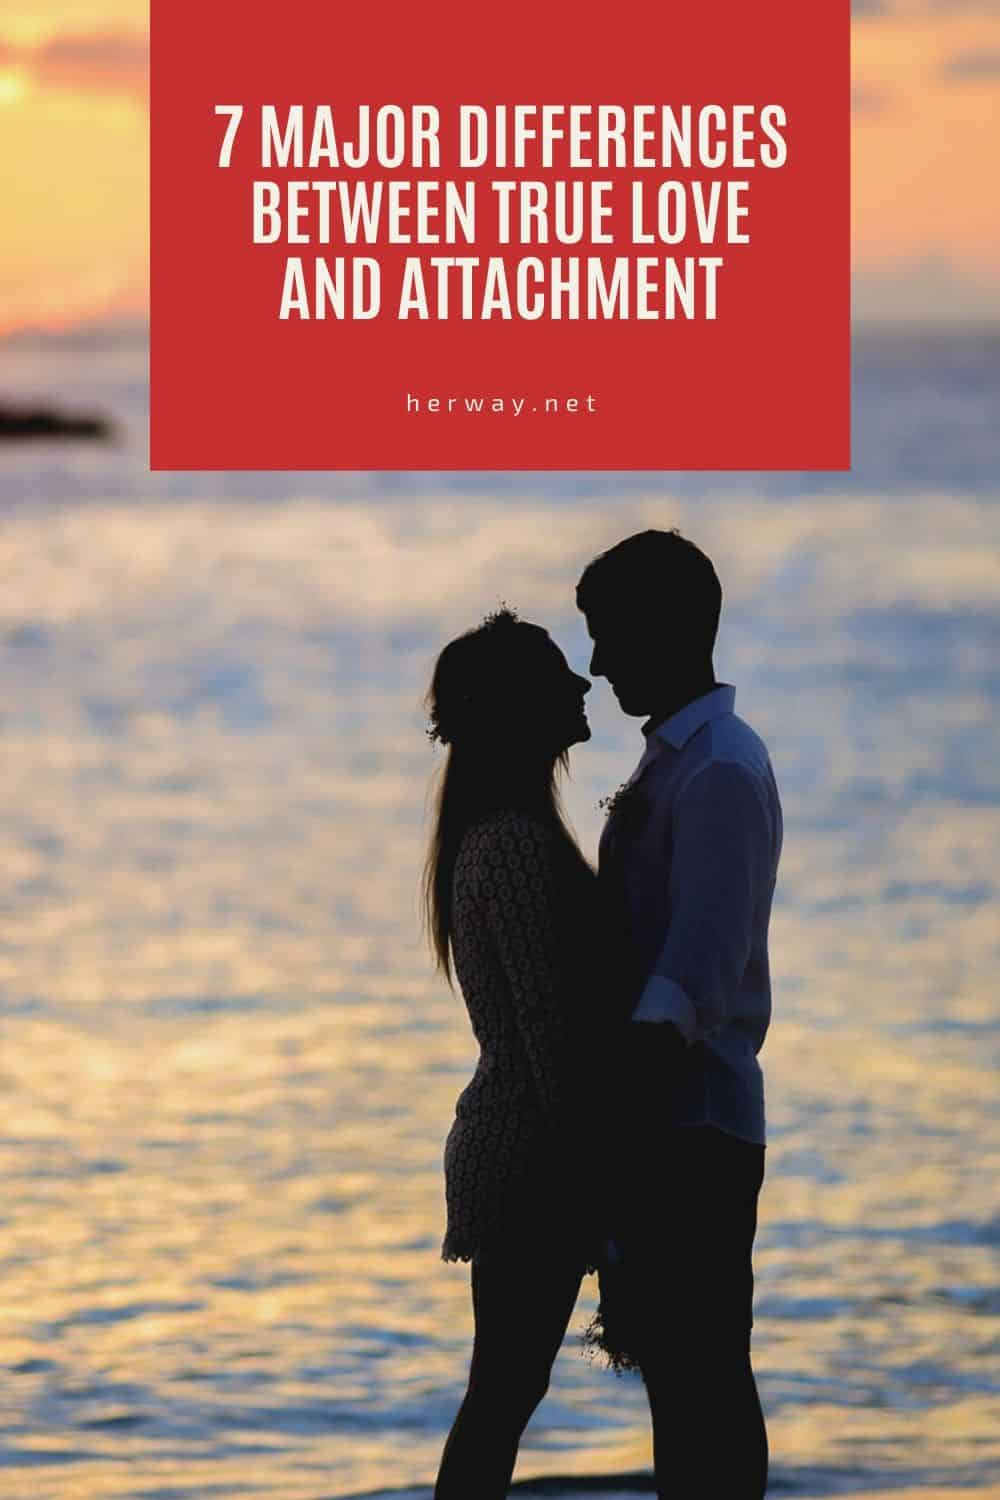 7 Major Differences Between True Love And Attachment